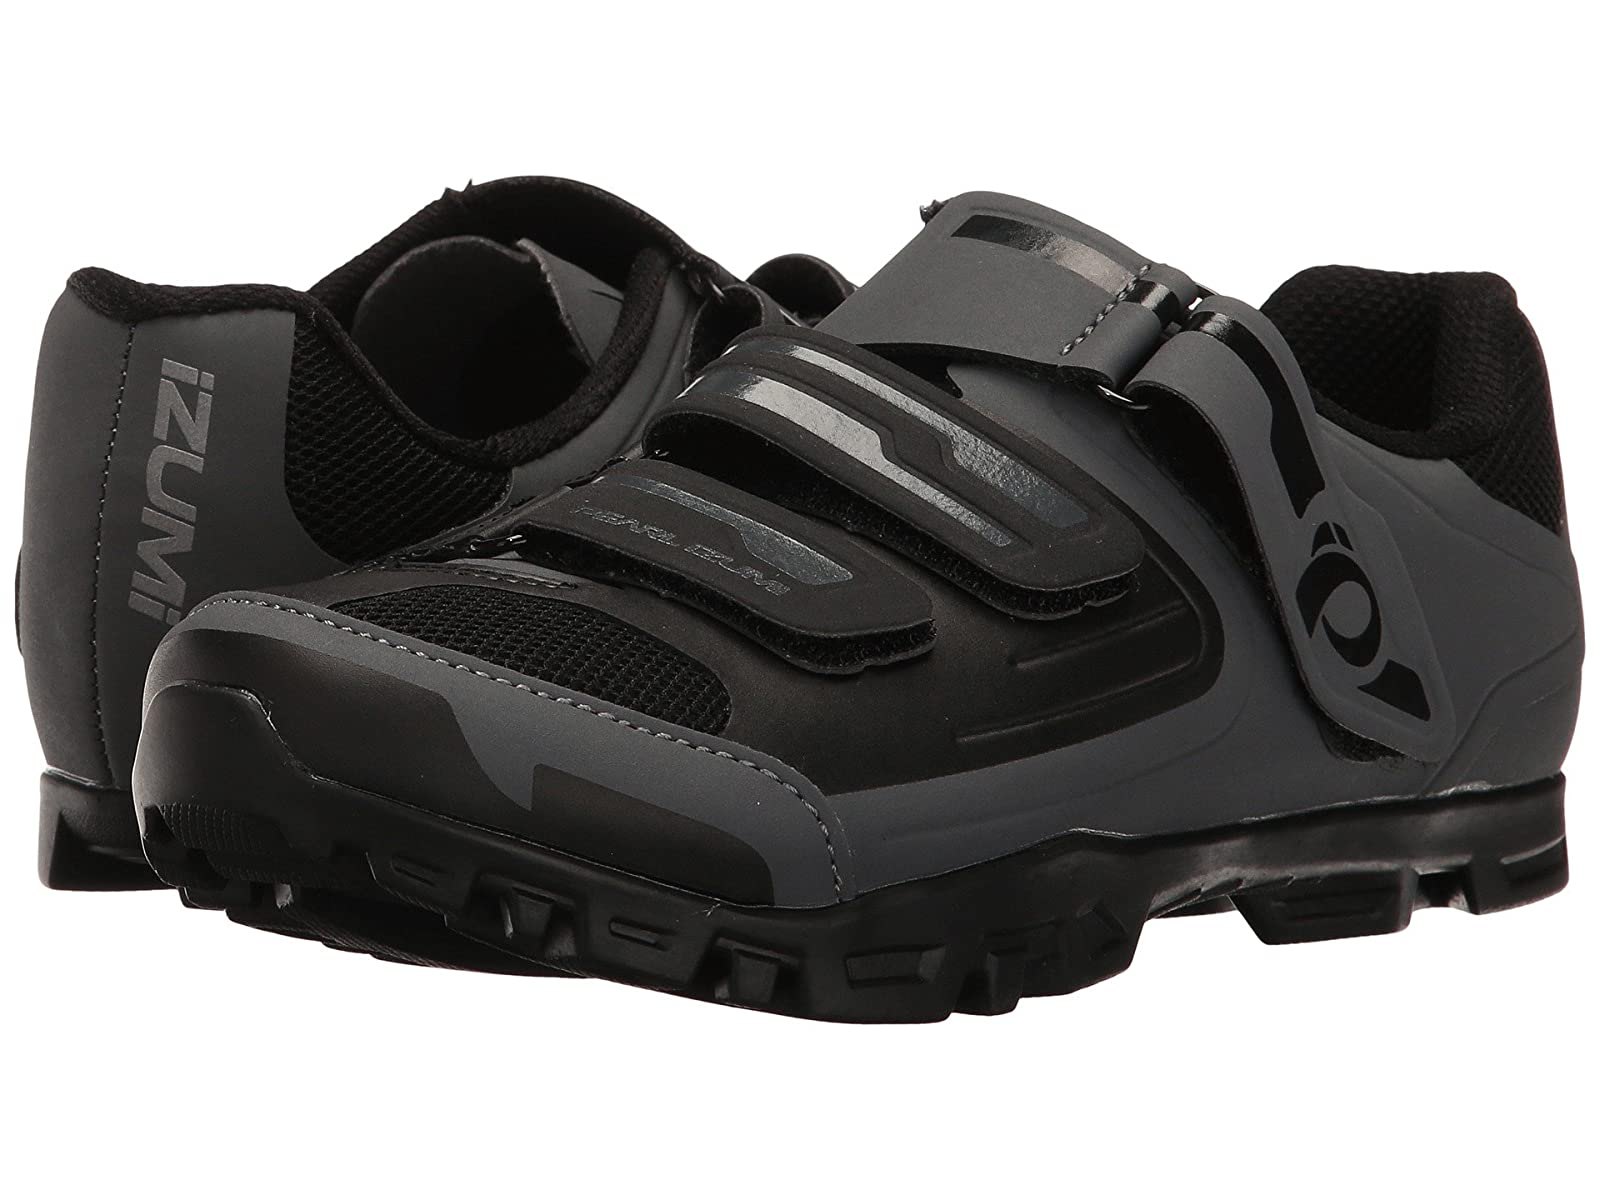 Pearl Izumi All-Road V4Atmospheric grades have affordable shoes